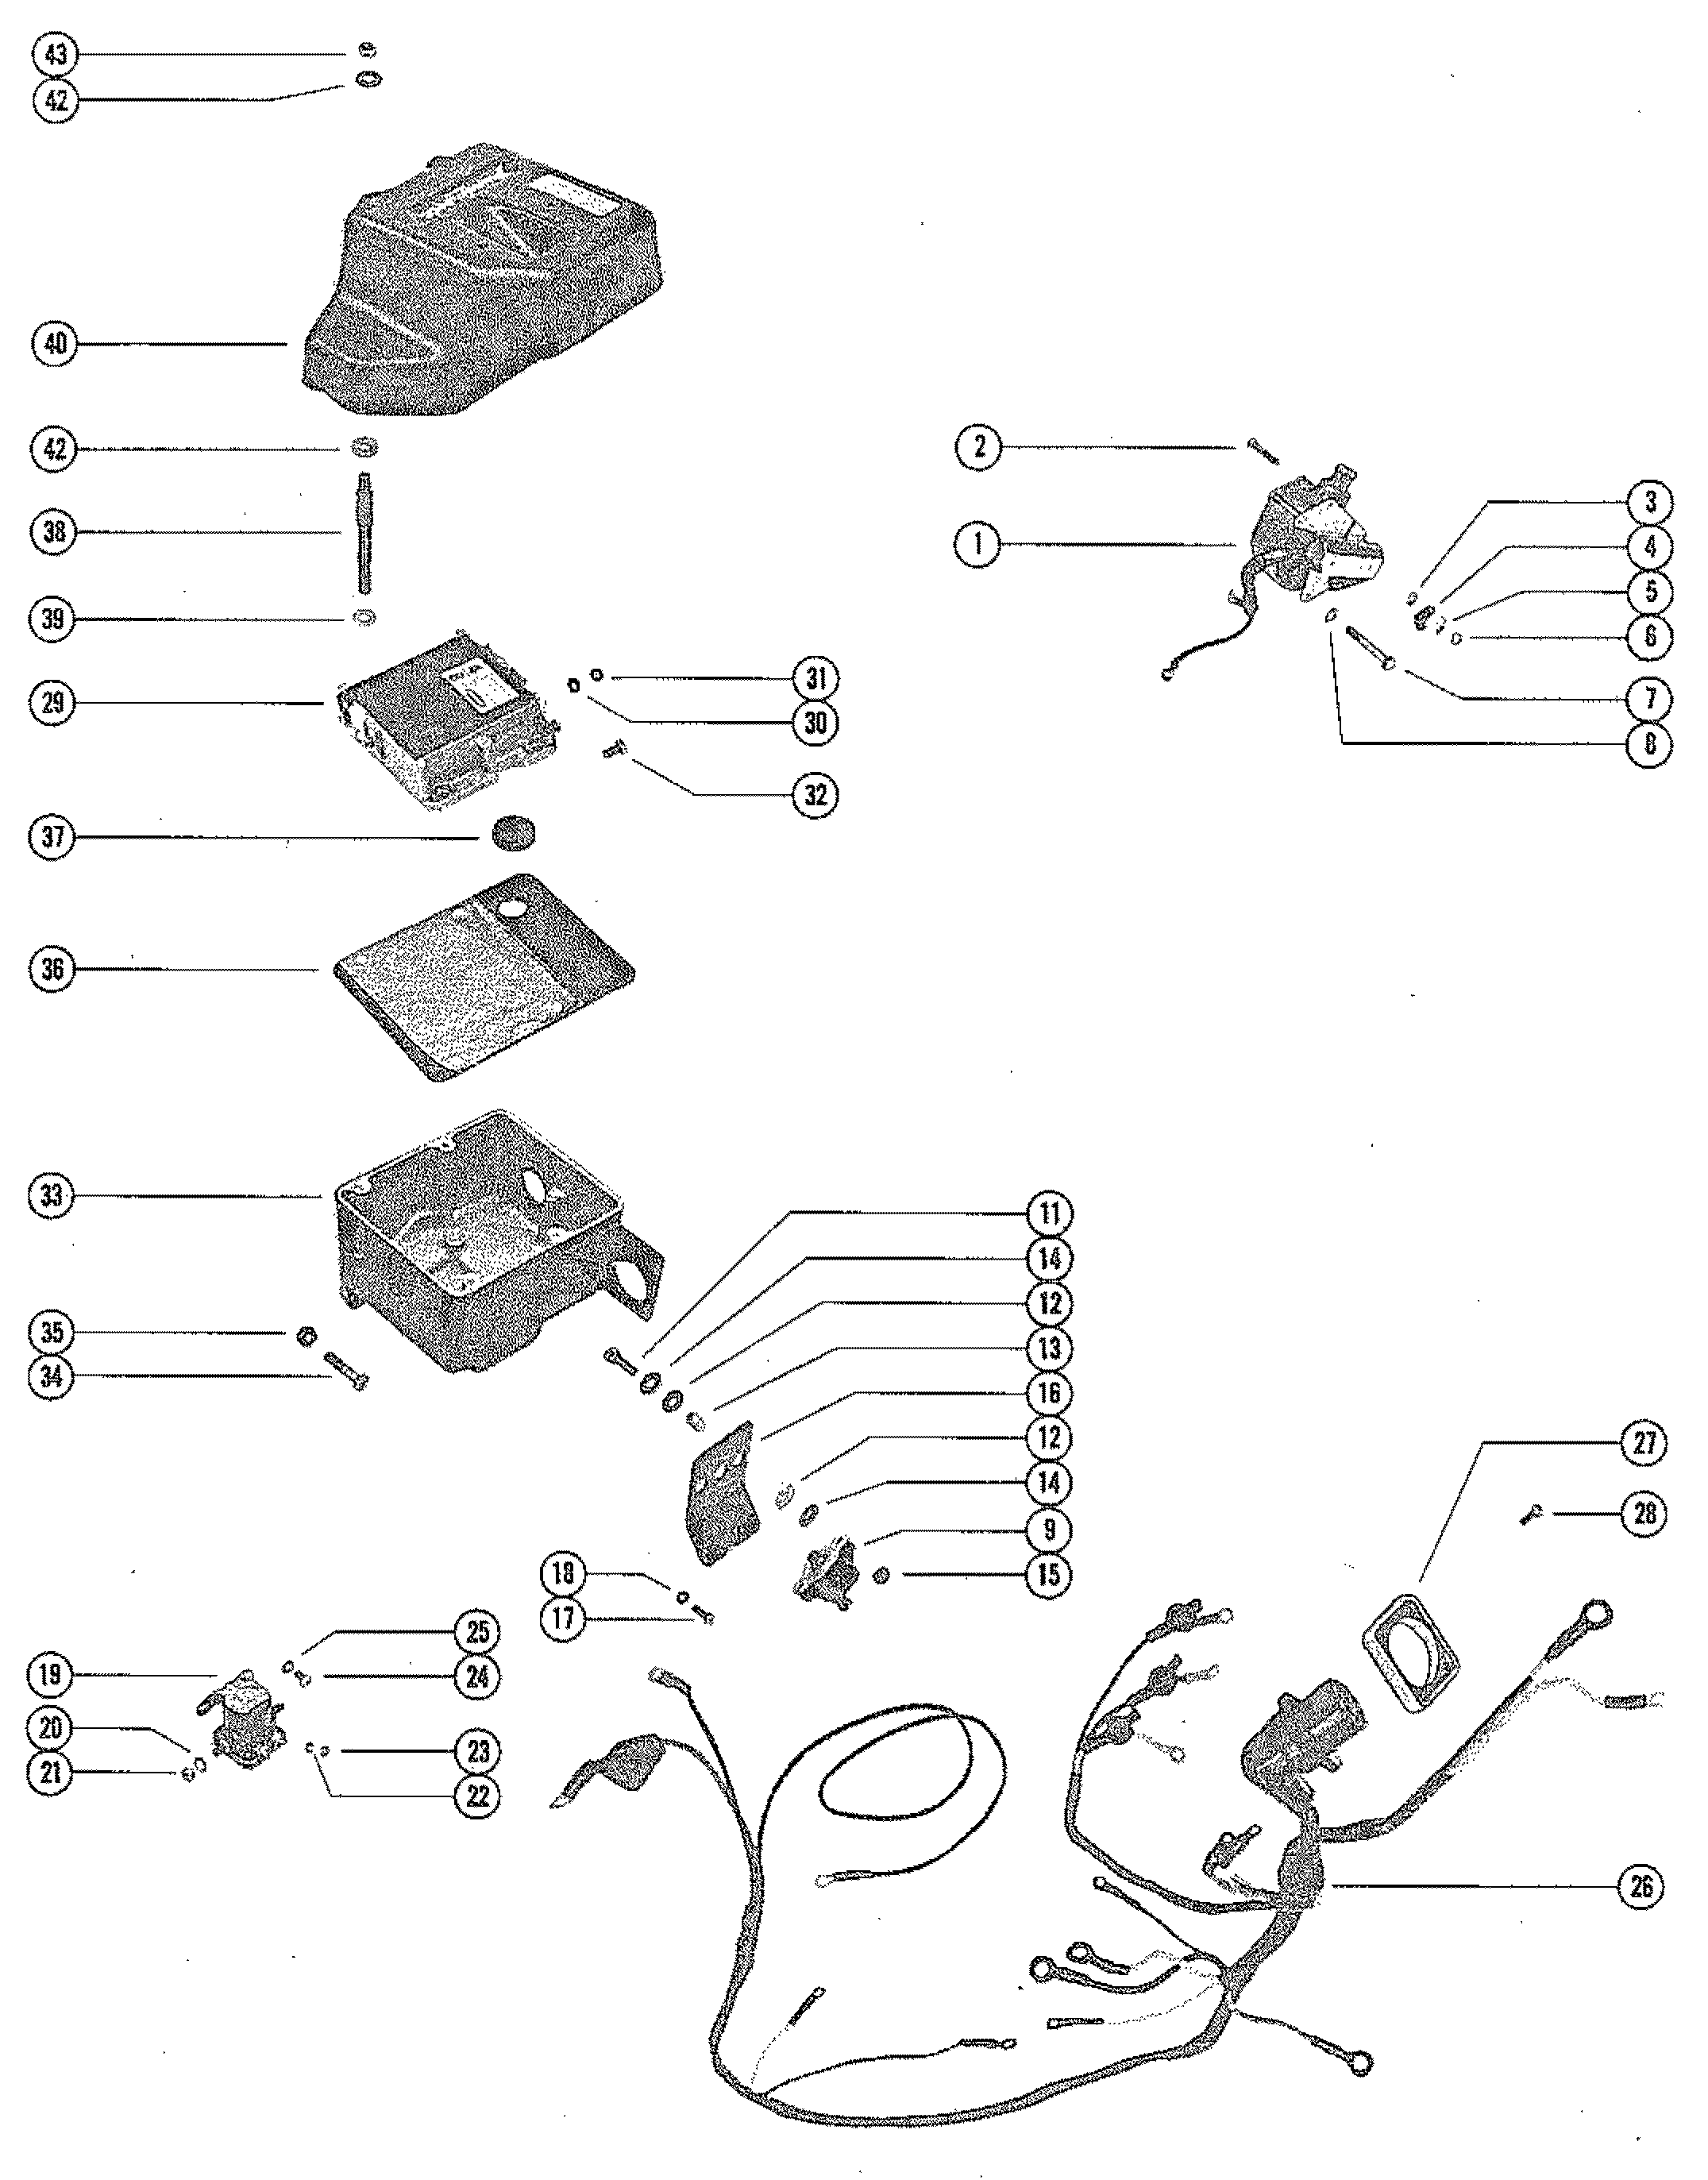 A8 chevy 454 ignition coil wiring diagram free wiring diagram for you \u2022